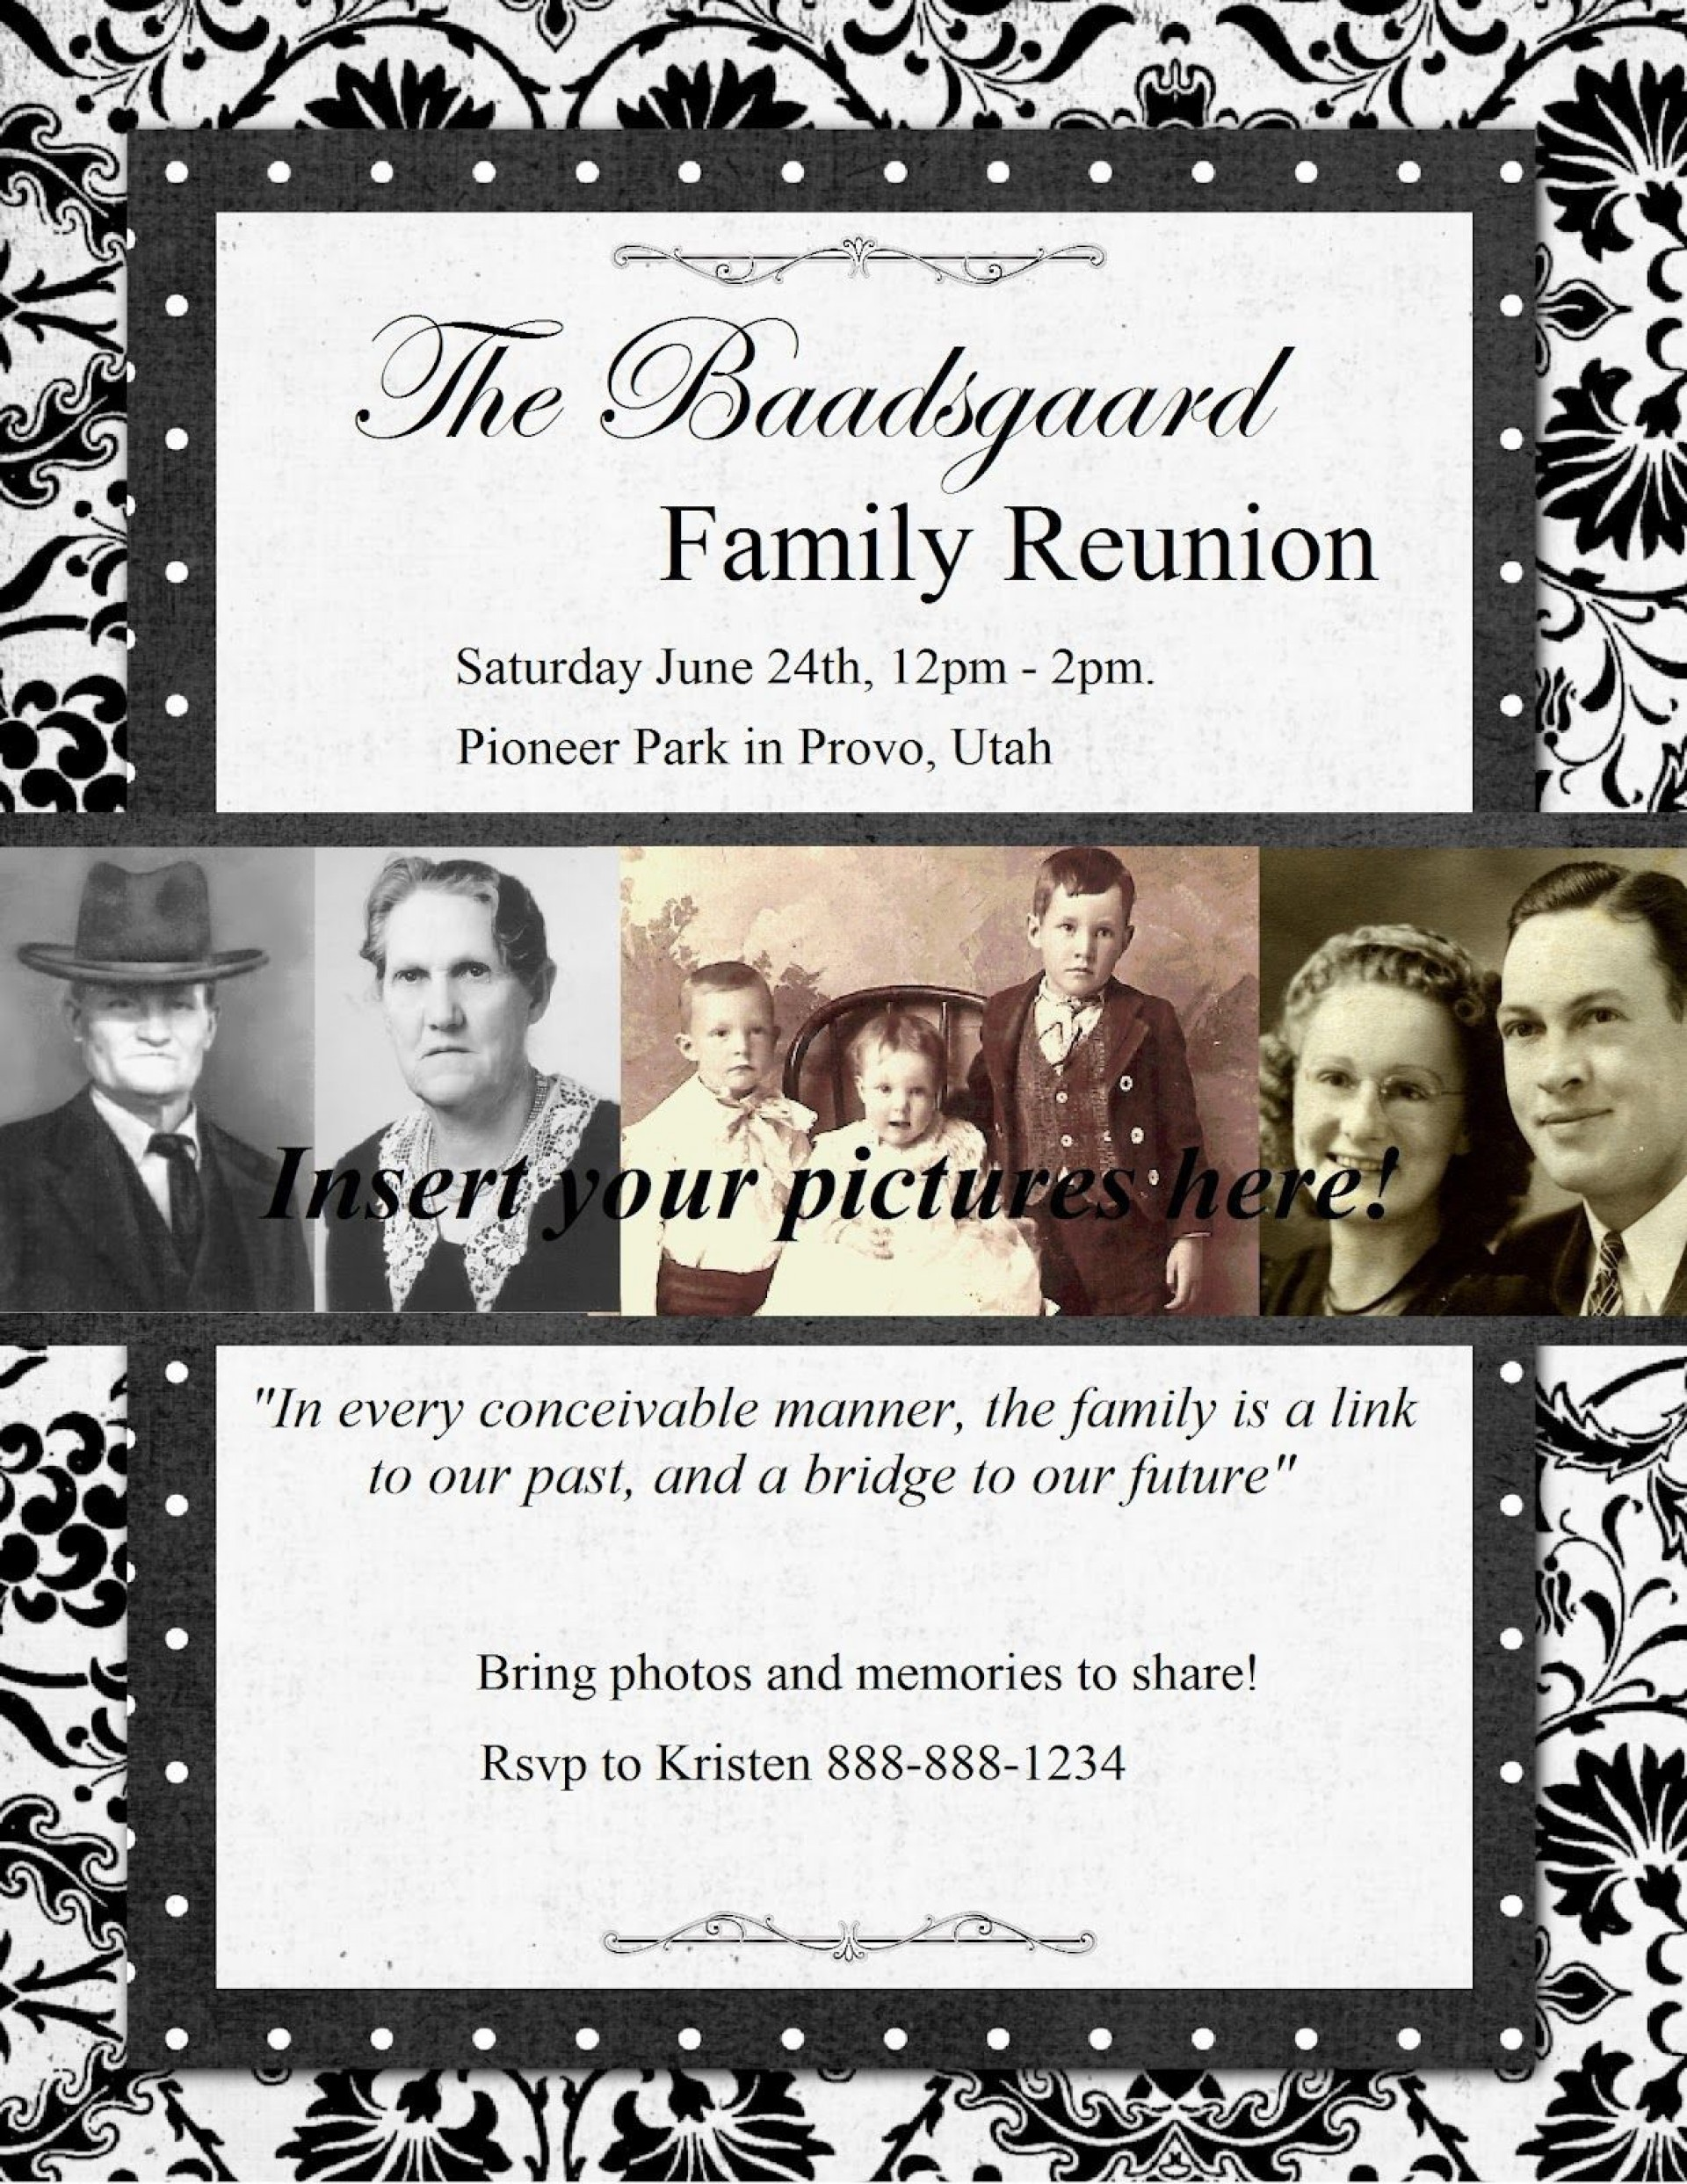 007 Frightening Family Reunion Flyer Template High Resolution  Templates Free For1920